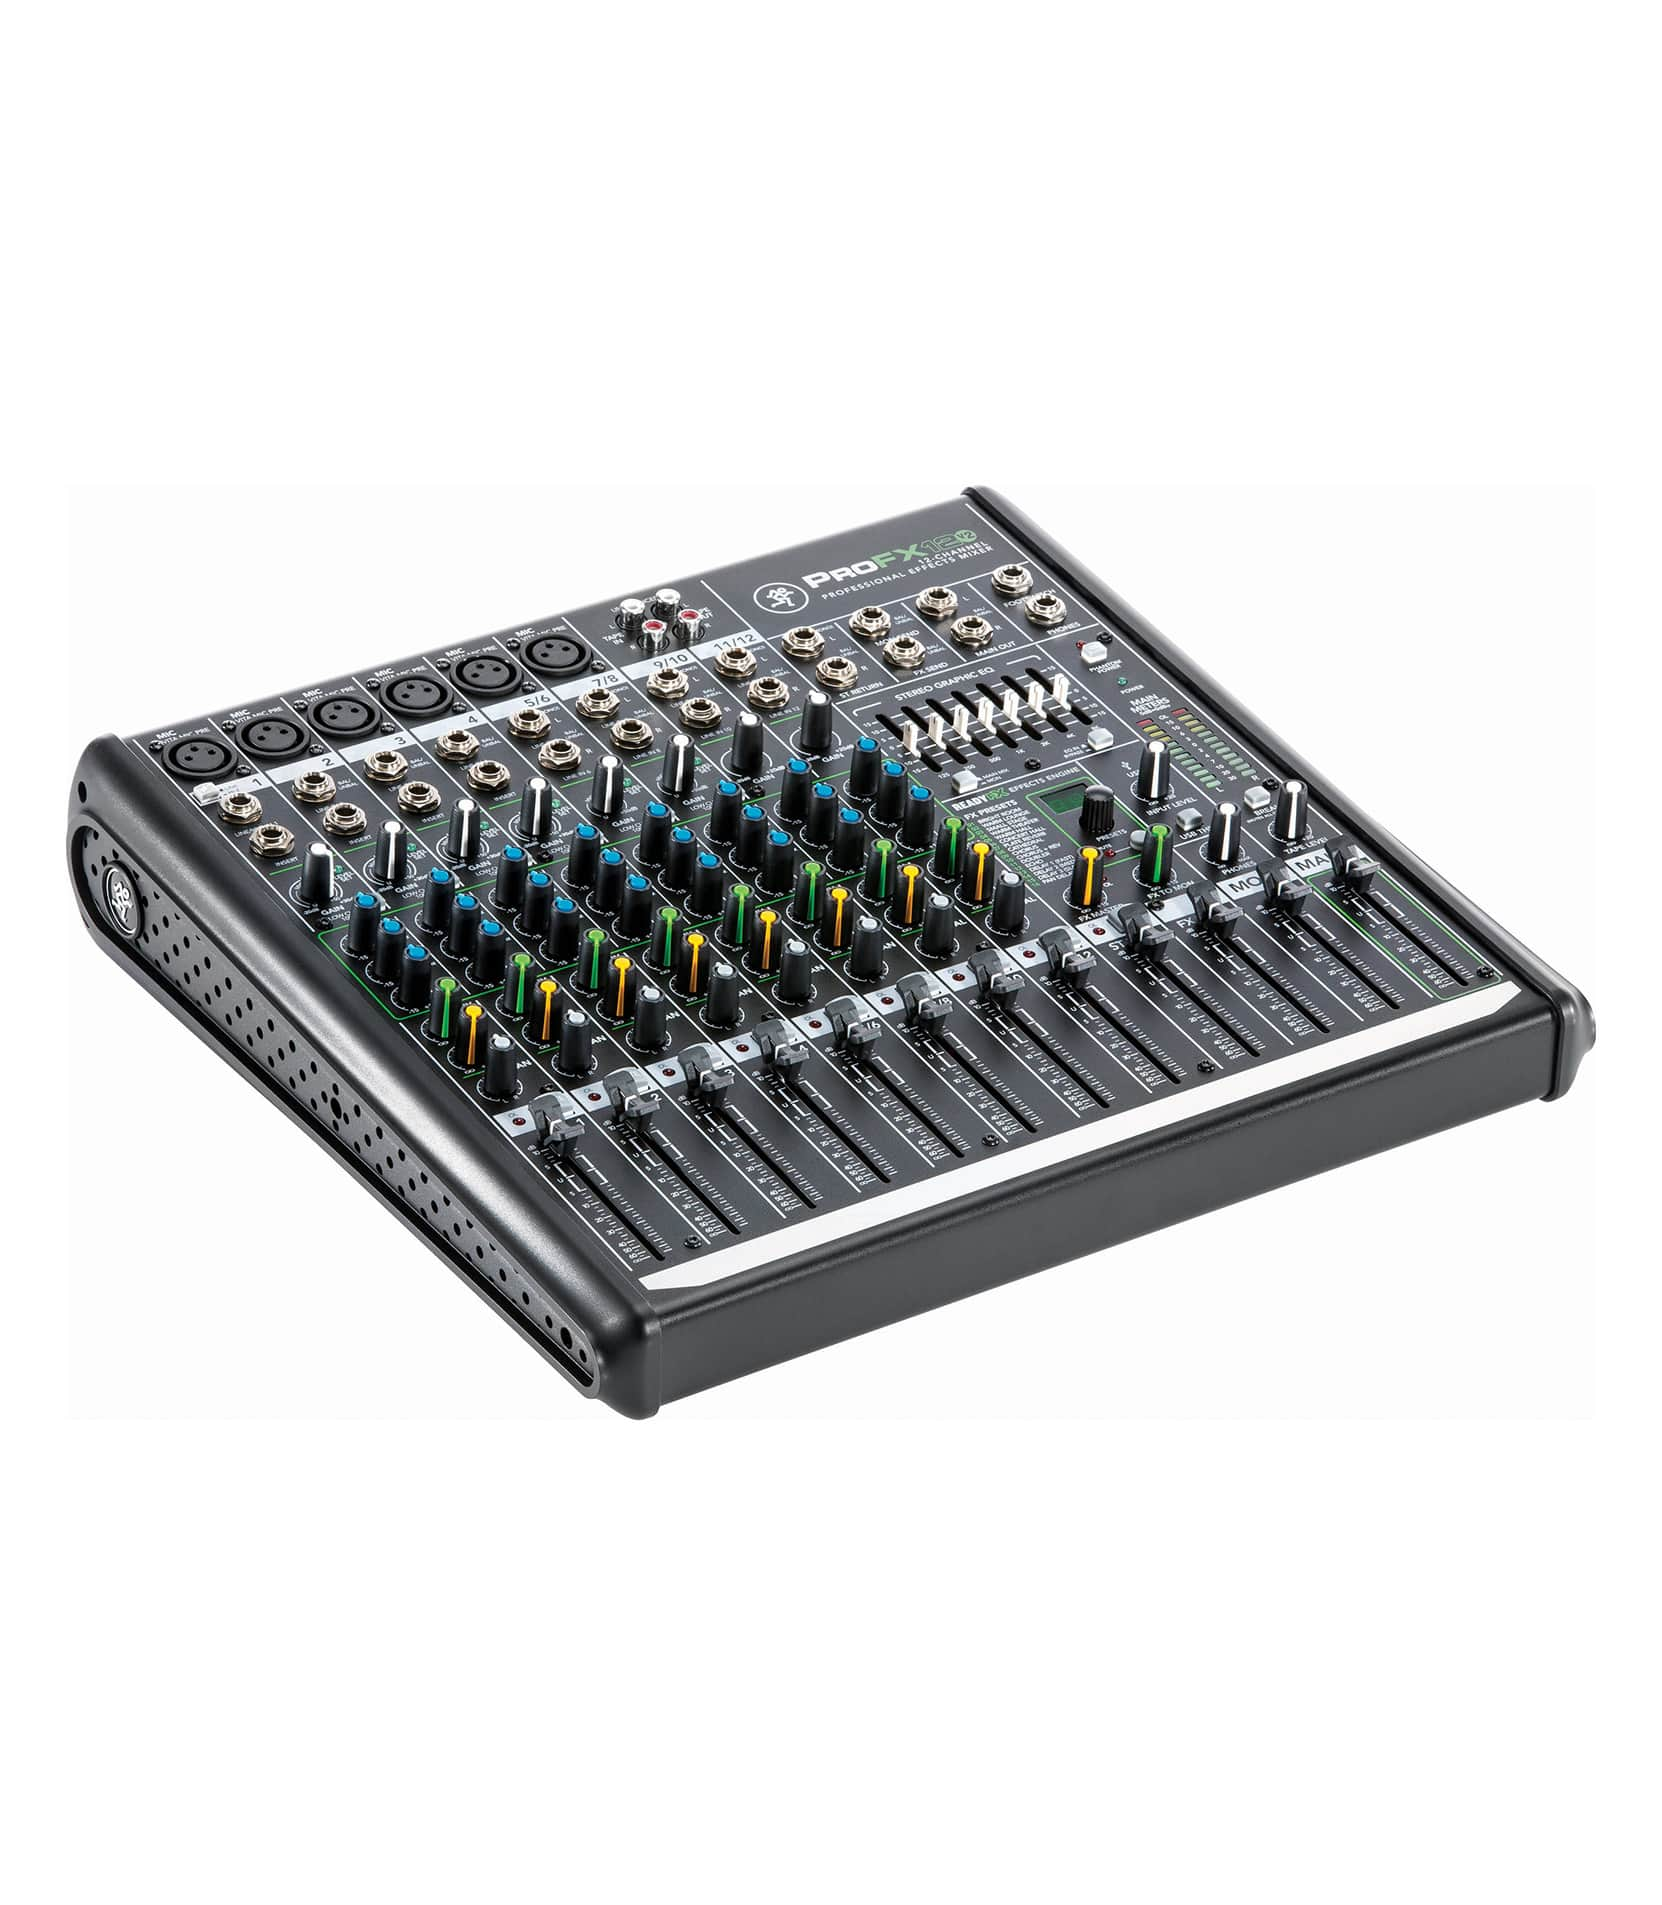 ProFX12v2 UK 12channel Professional Effects Mixer - Buy Online